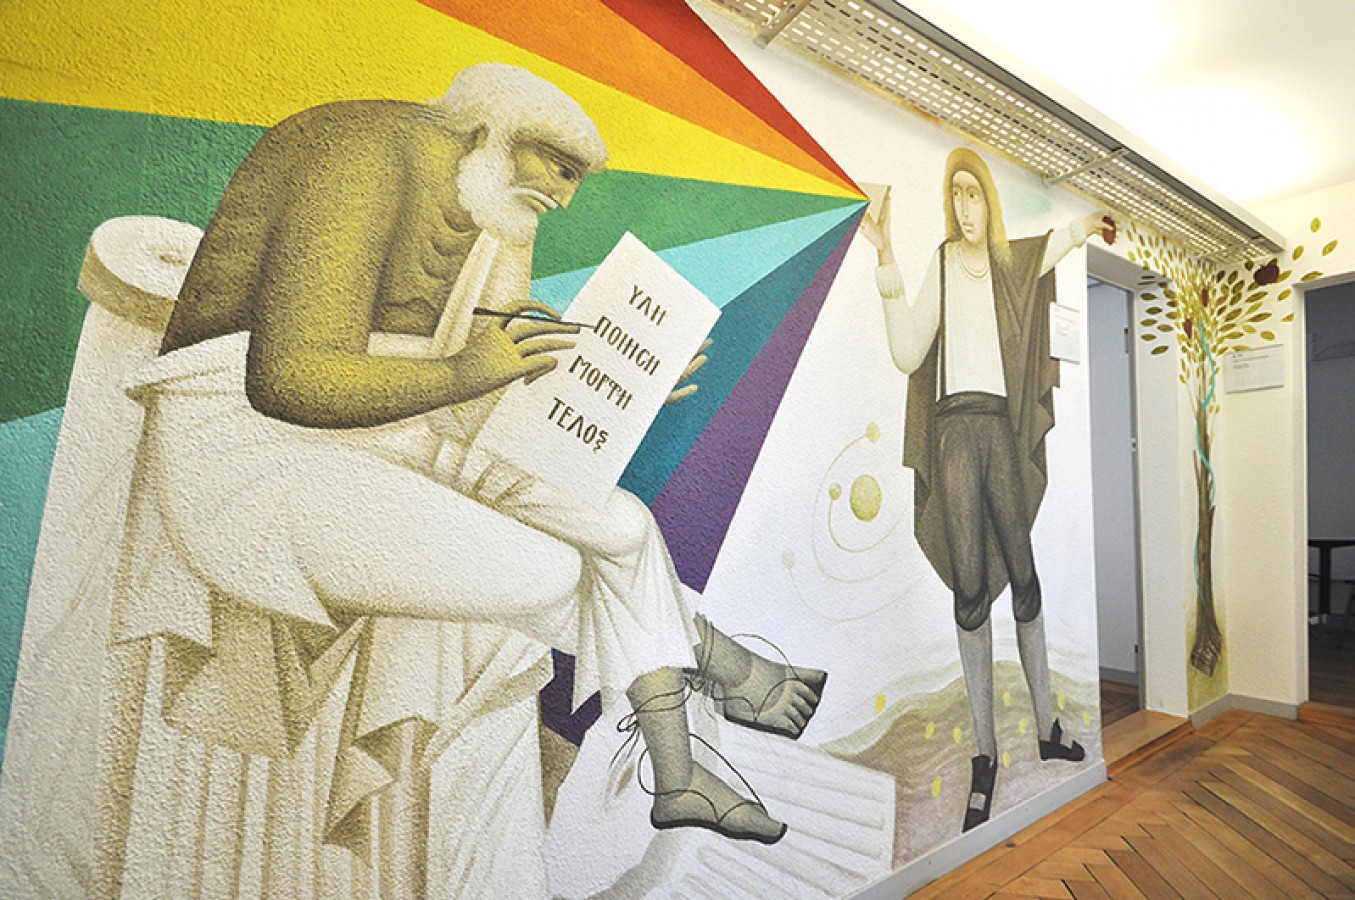 fikos-antonios-new-murals-at-eth-zurich-12